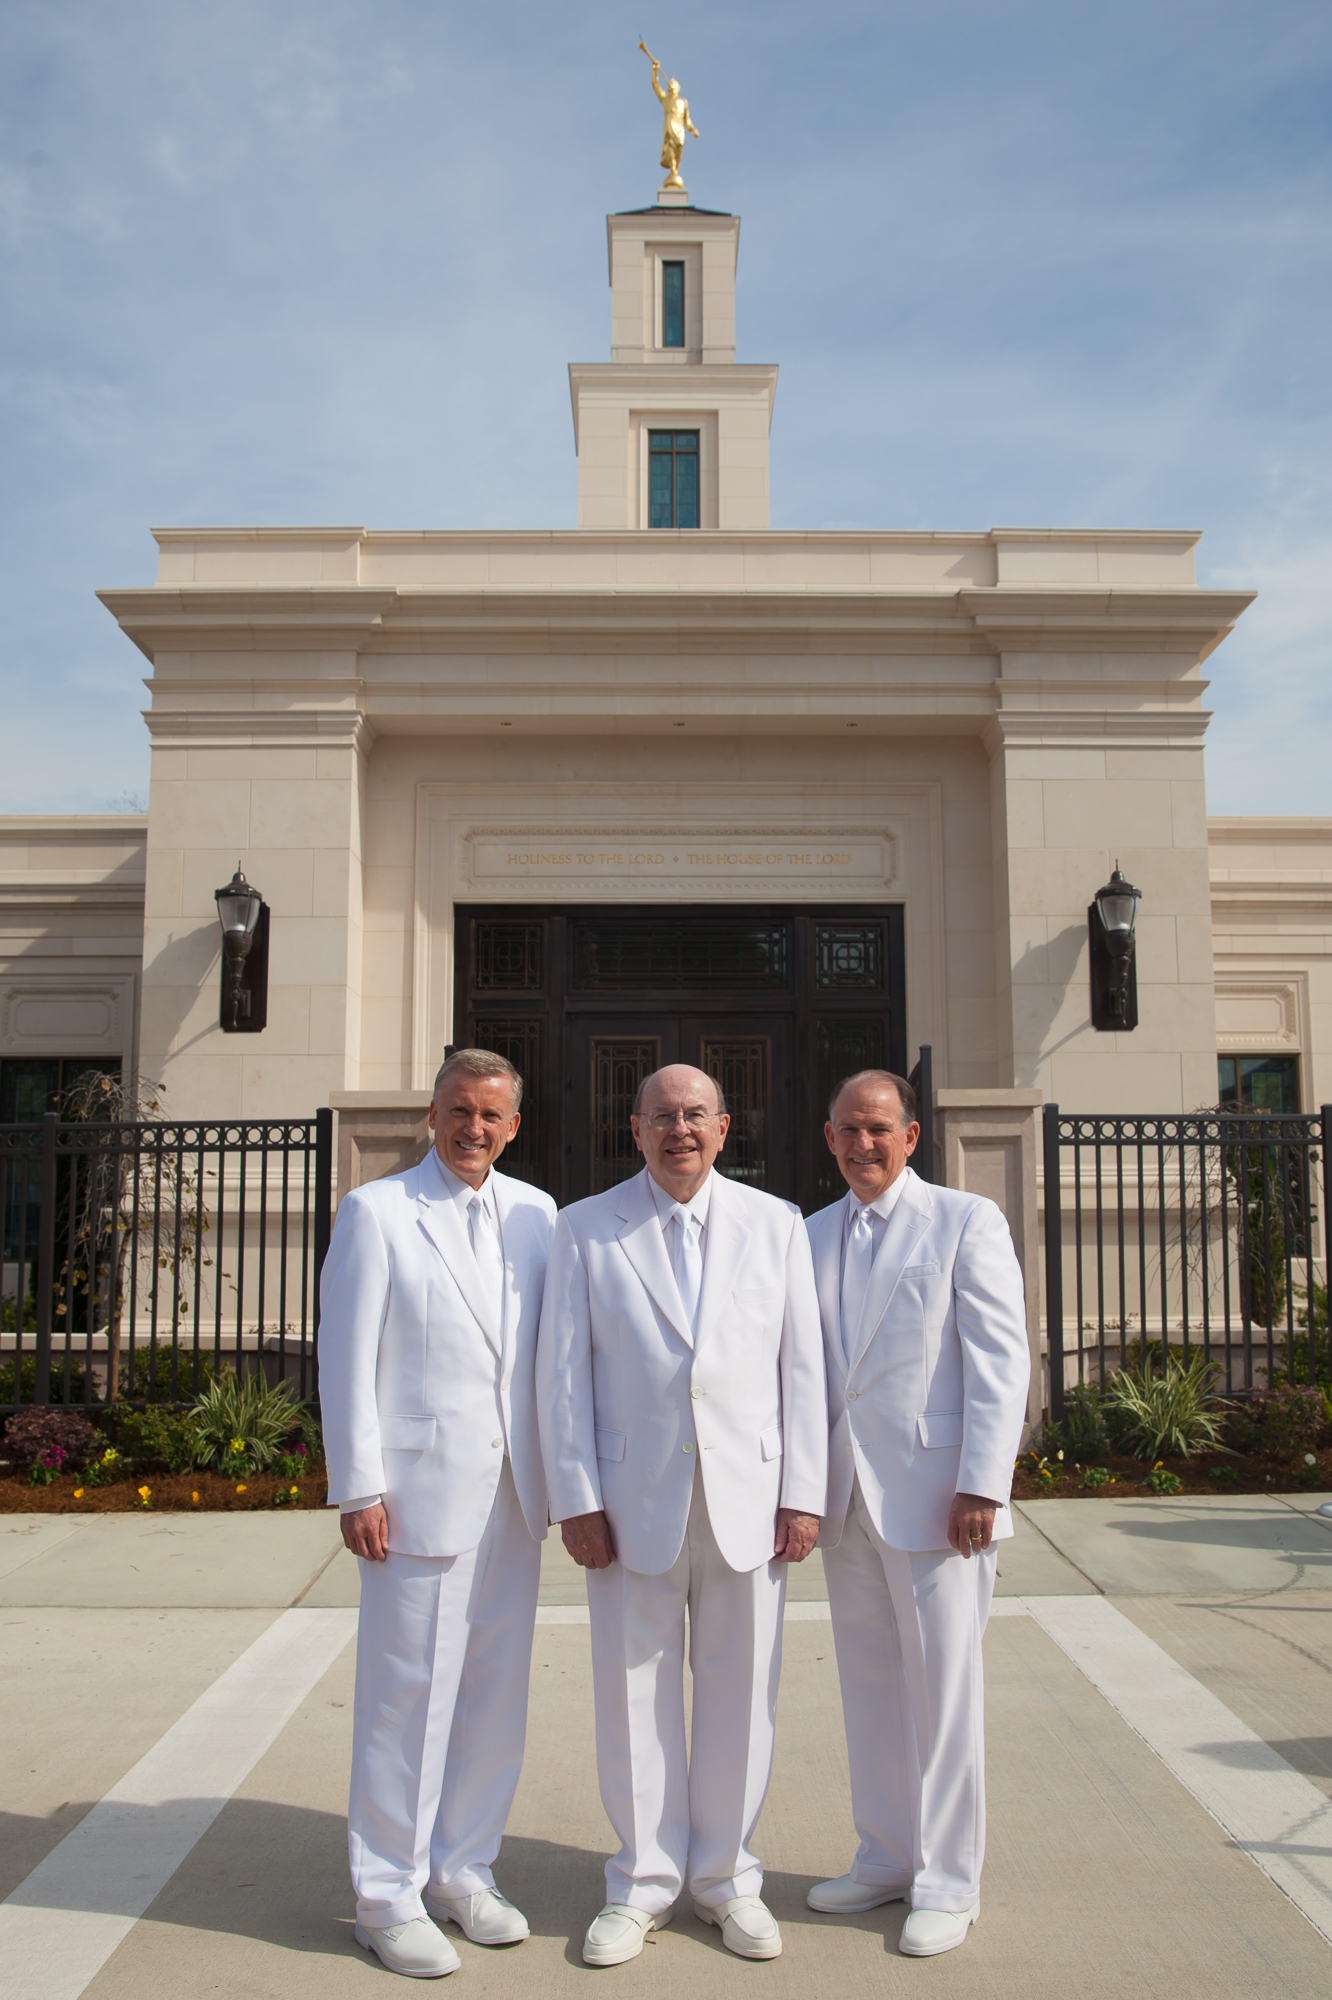 From left: Elder Kevin R. Duncan, Elder Quentin L. Cook and Elder James B. Martino pose for a photo outside of the Baton Rouge Louisiana Temple following its rededication on Sunday, Nov. 17, 2019.